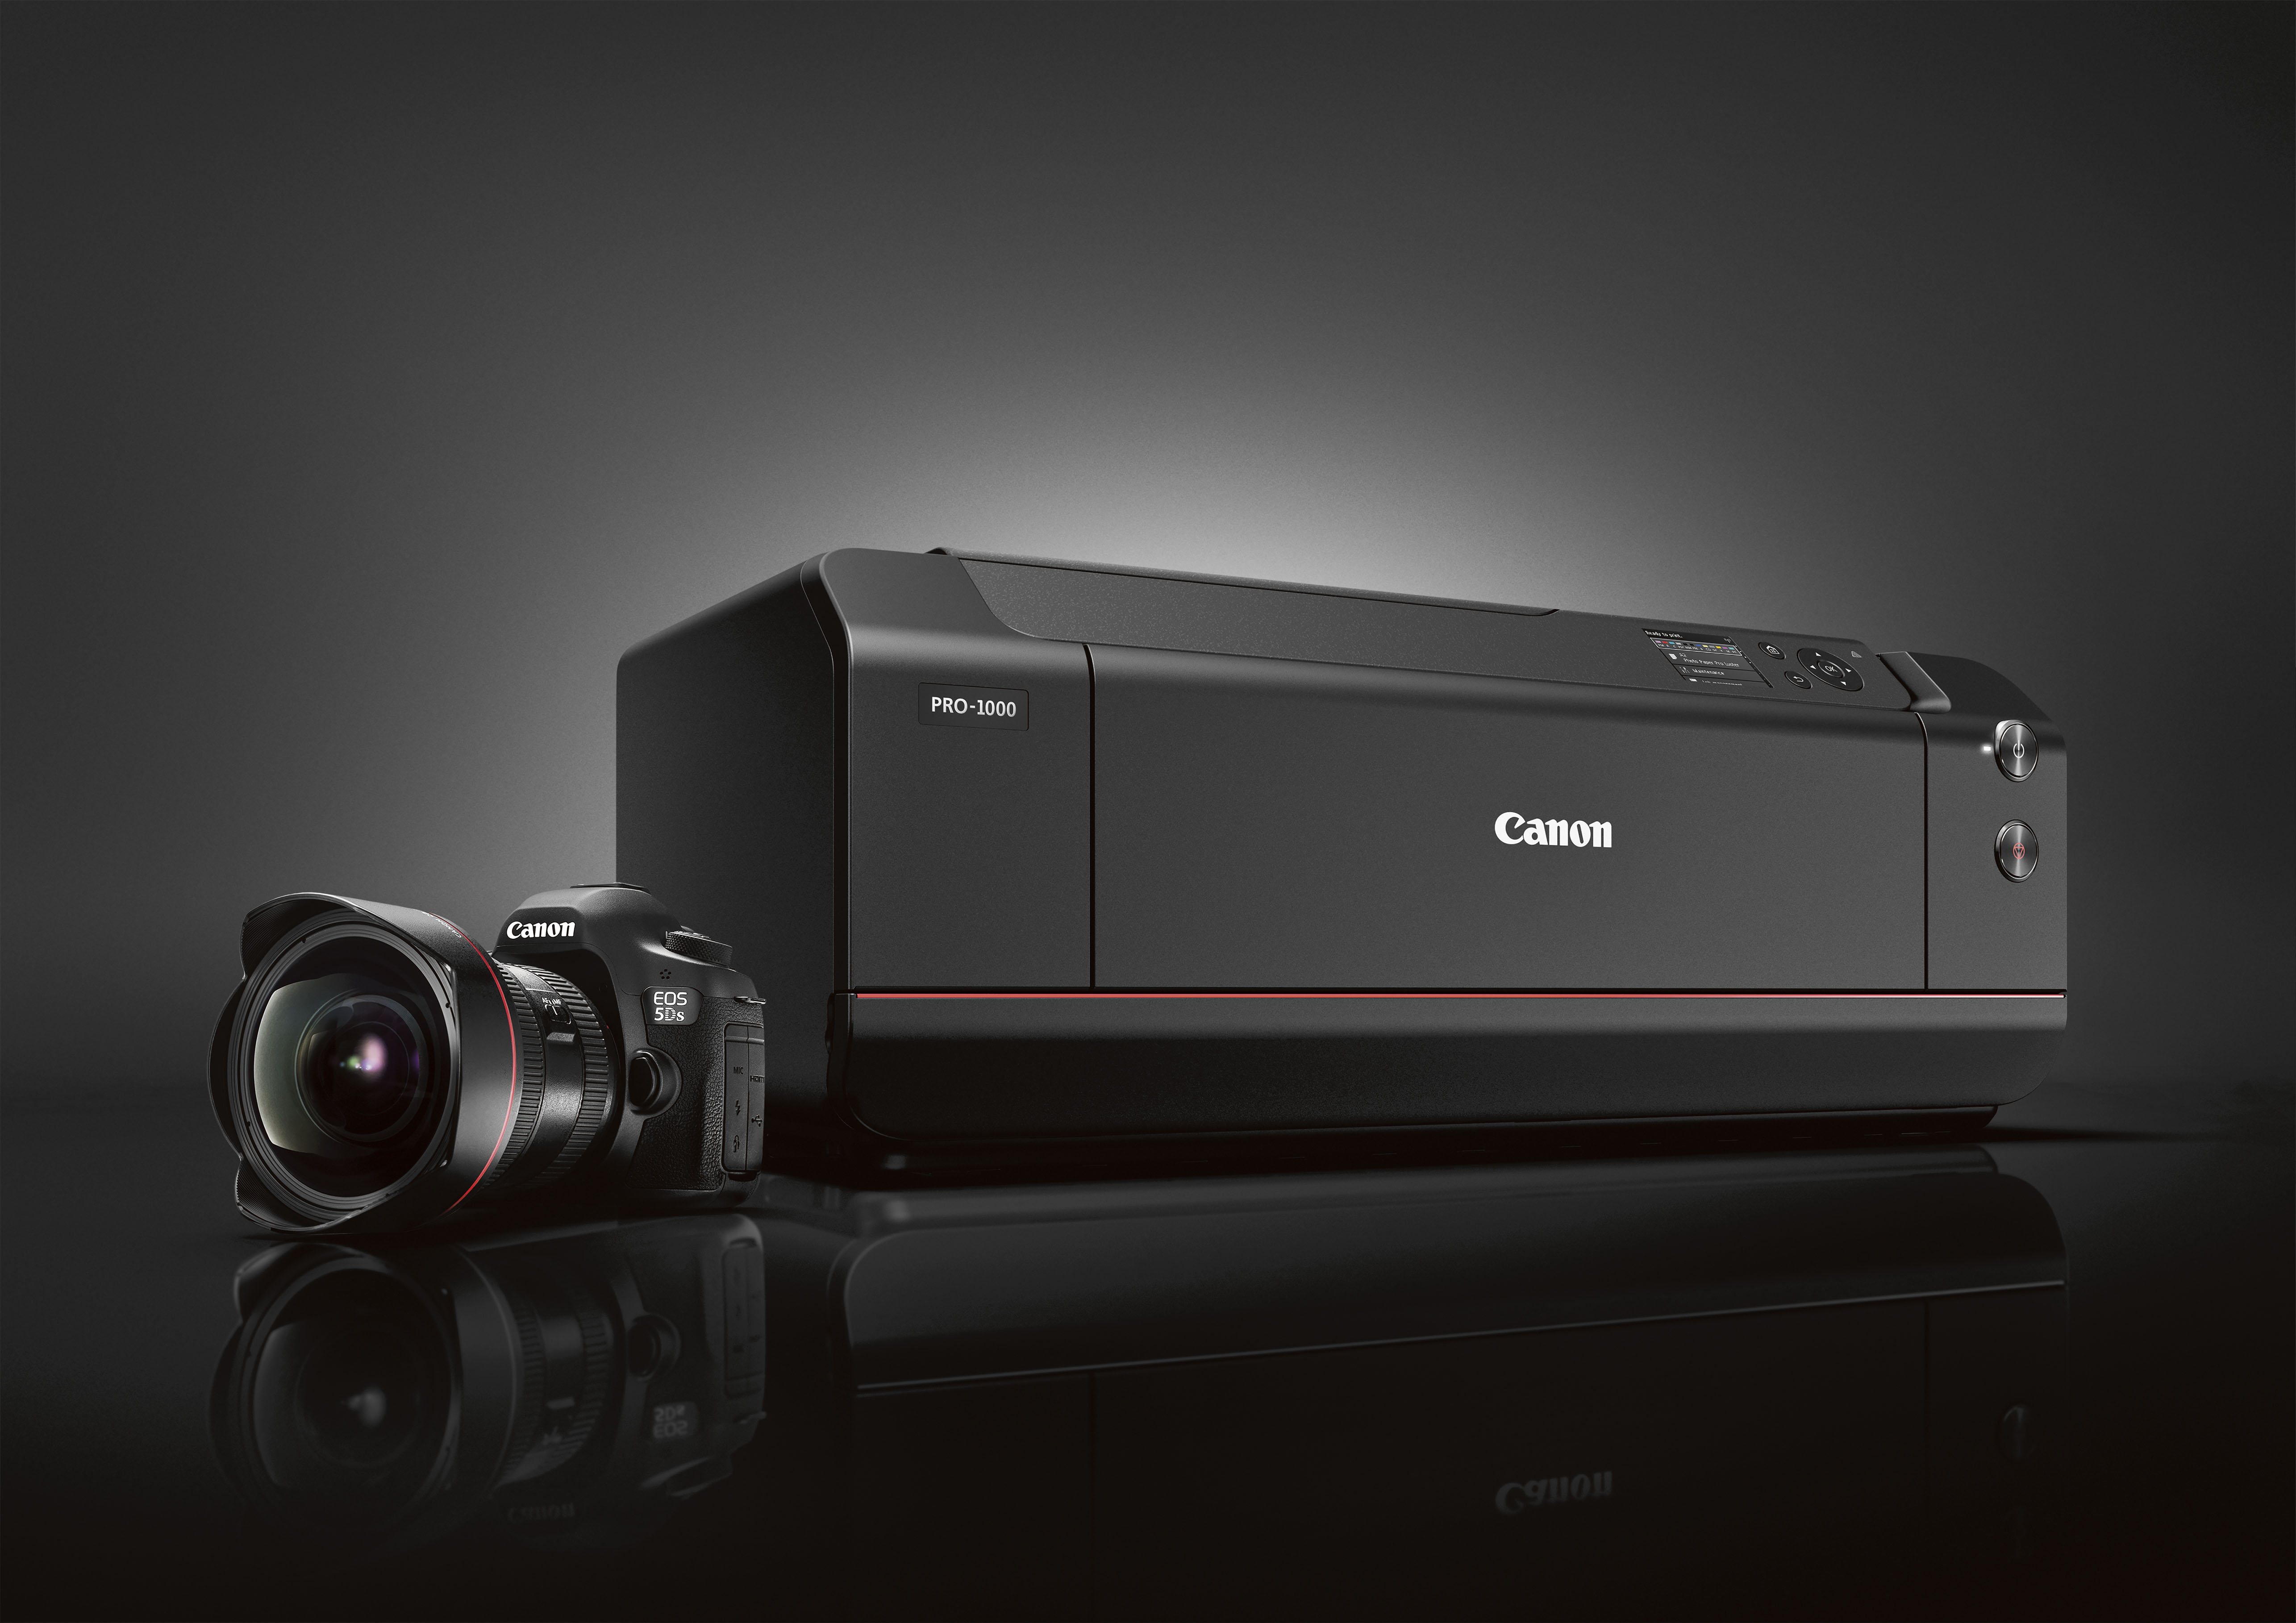 canon intros imageprograf pro 1000 inkjet printer pdnpulse. Black Bedroom Furniture Sets. Home Design Ideas